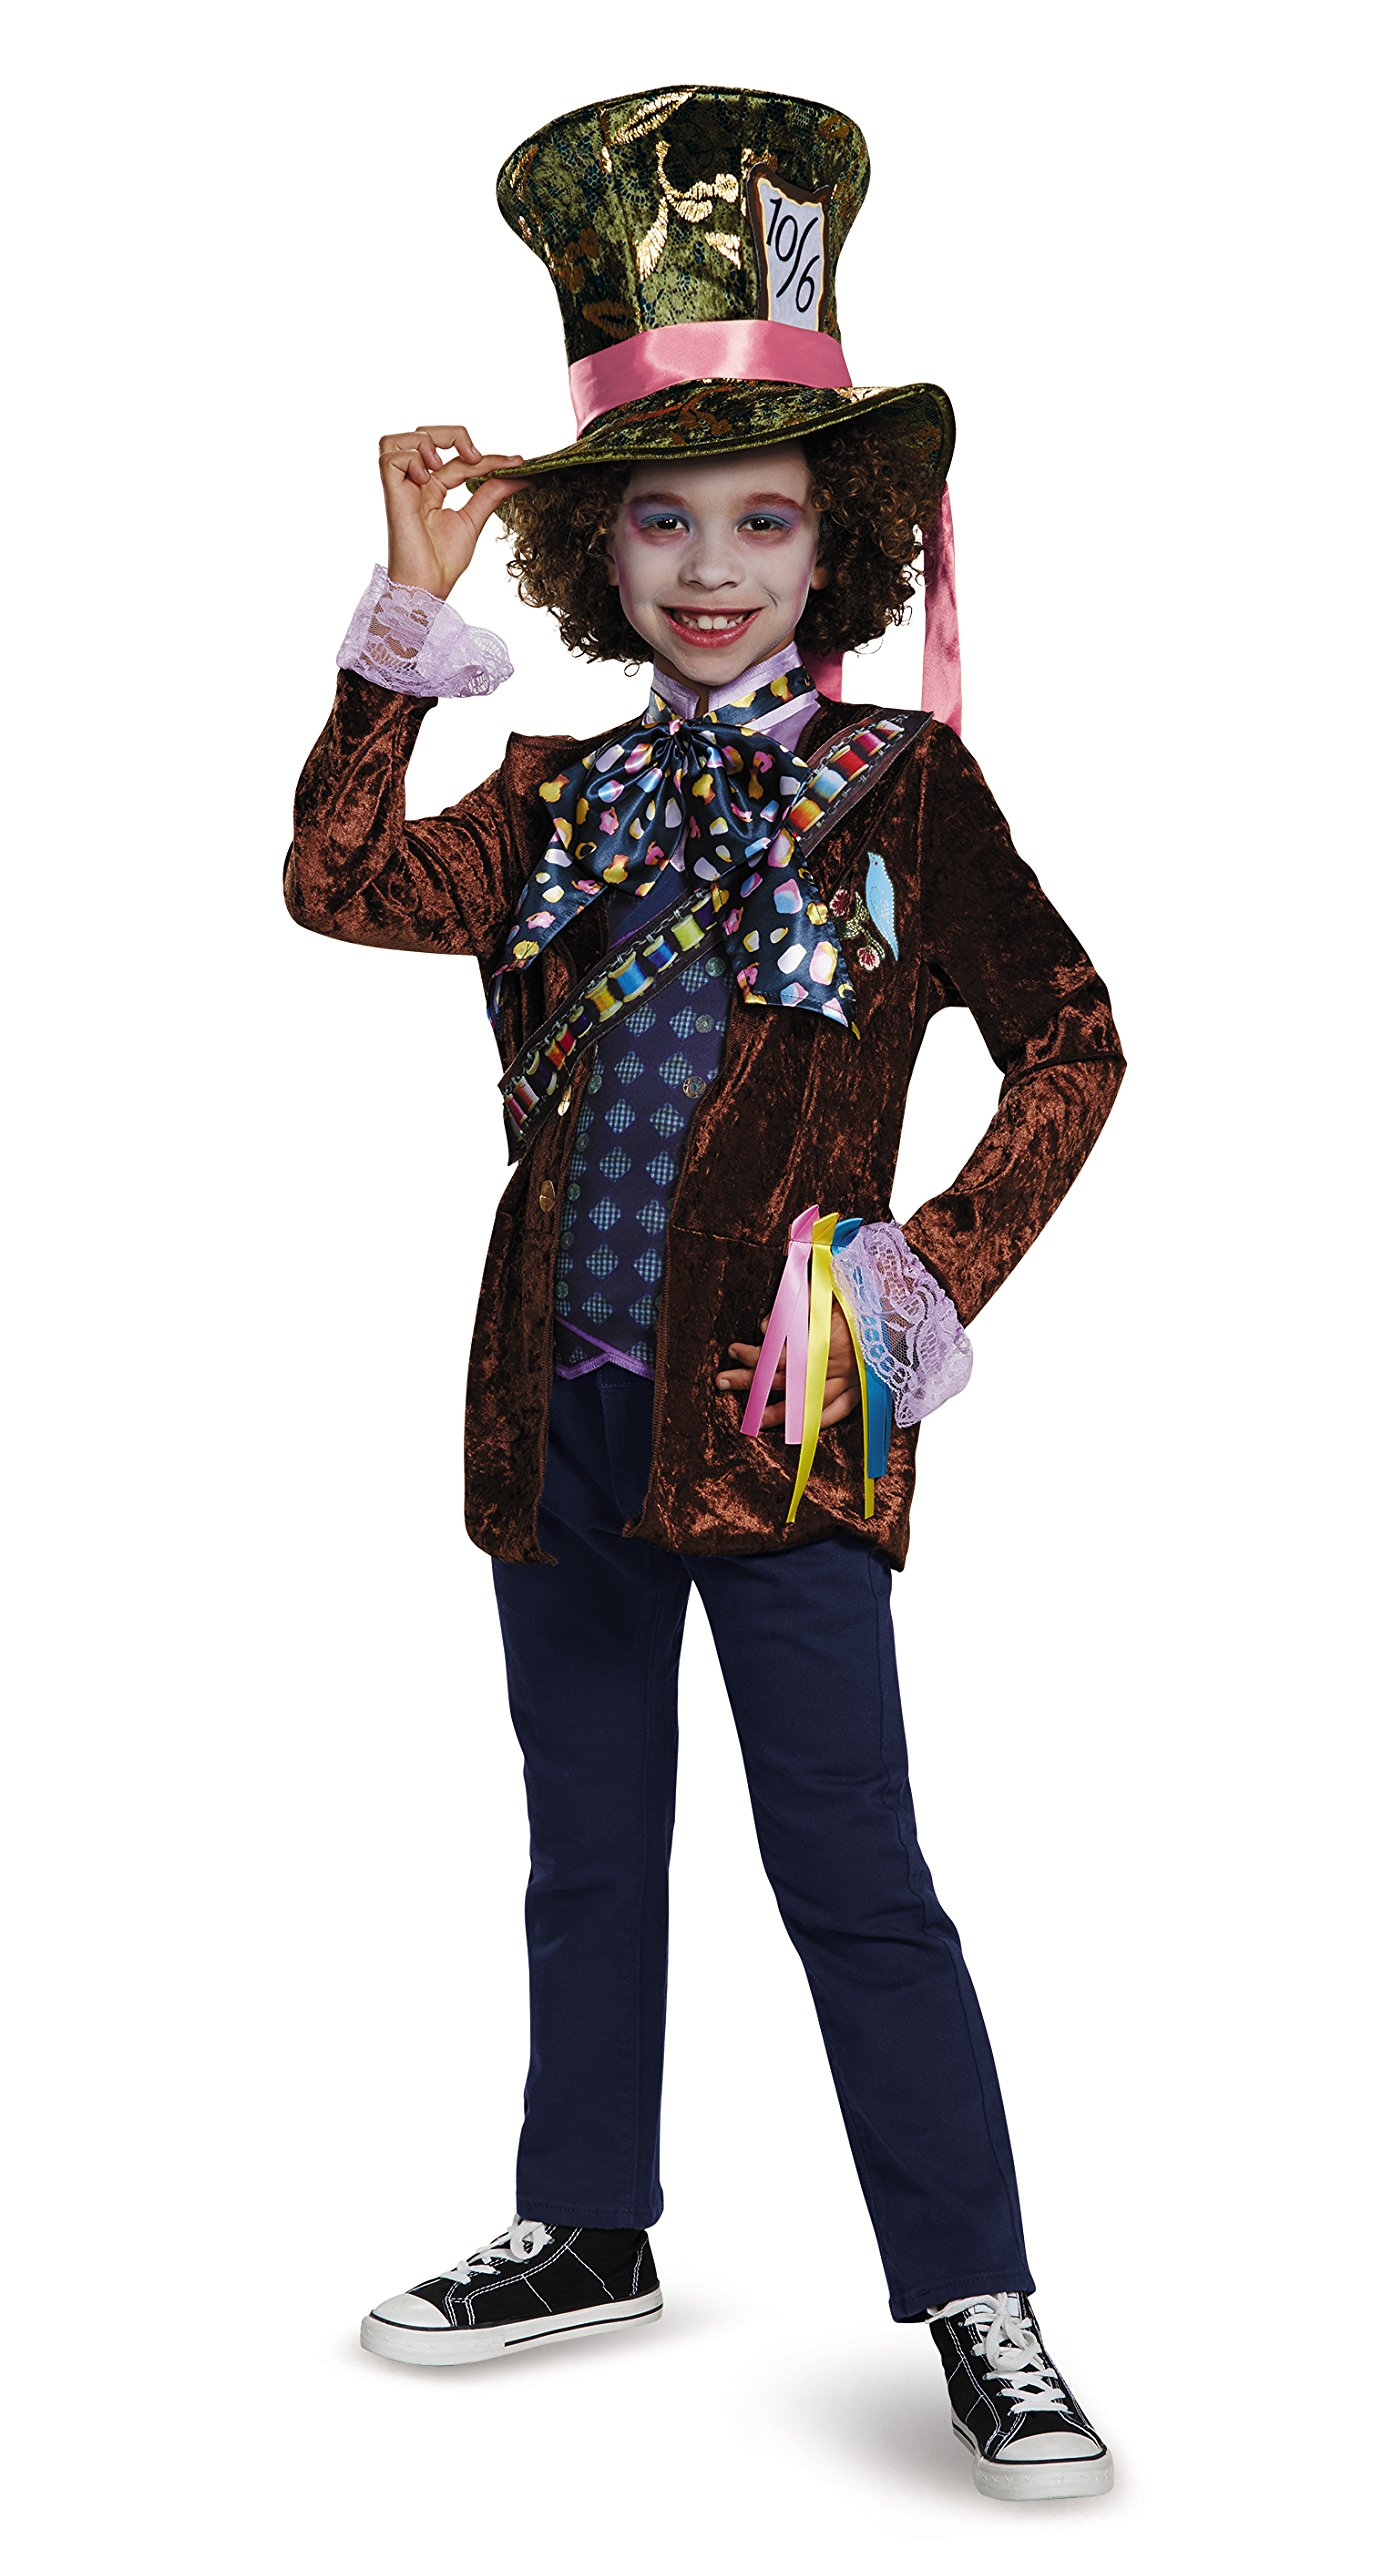 MAD Hatter Classic Alice Through The Looking Glass Movie Disney Costume, Medium/7-8